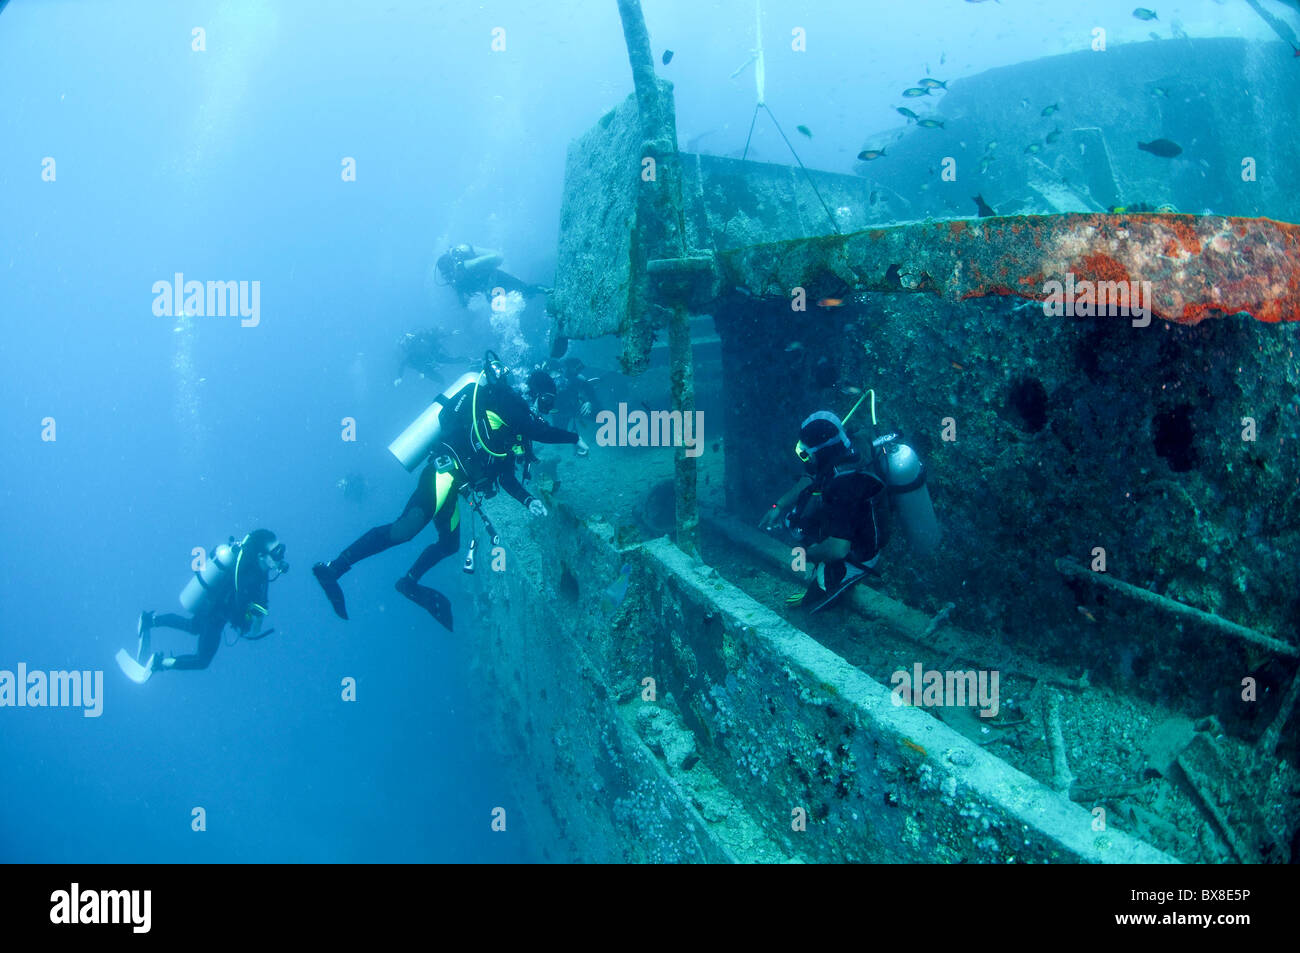 Divers at a shipwreck at Ras Mohammed National Park, Red Sea, Sinai, Egypt, - Stock Image